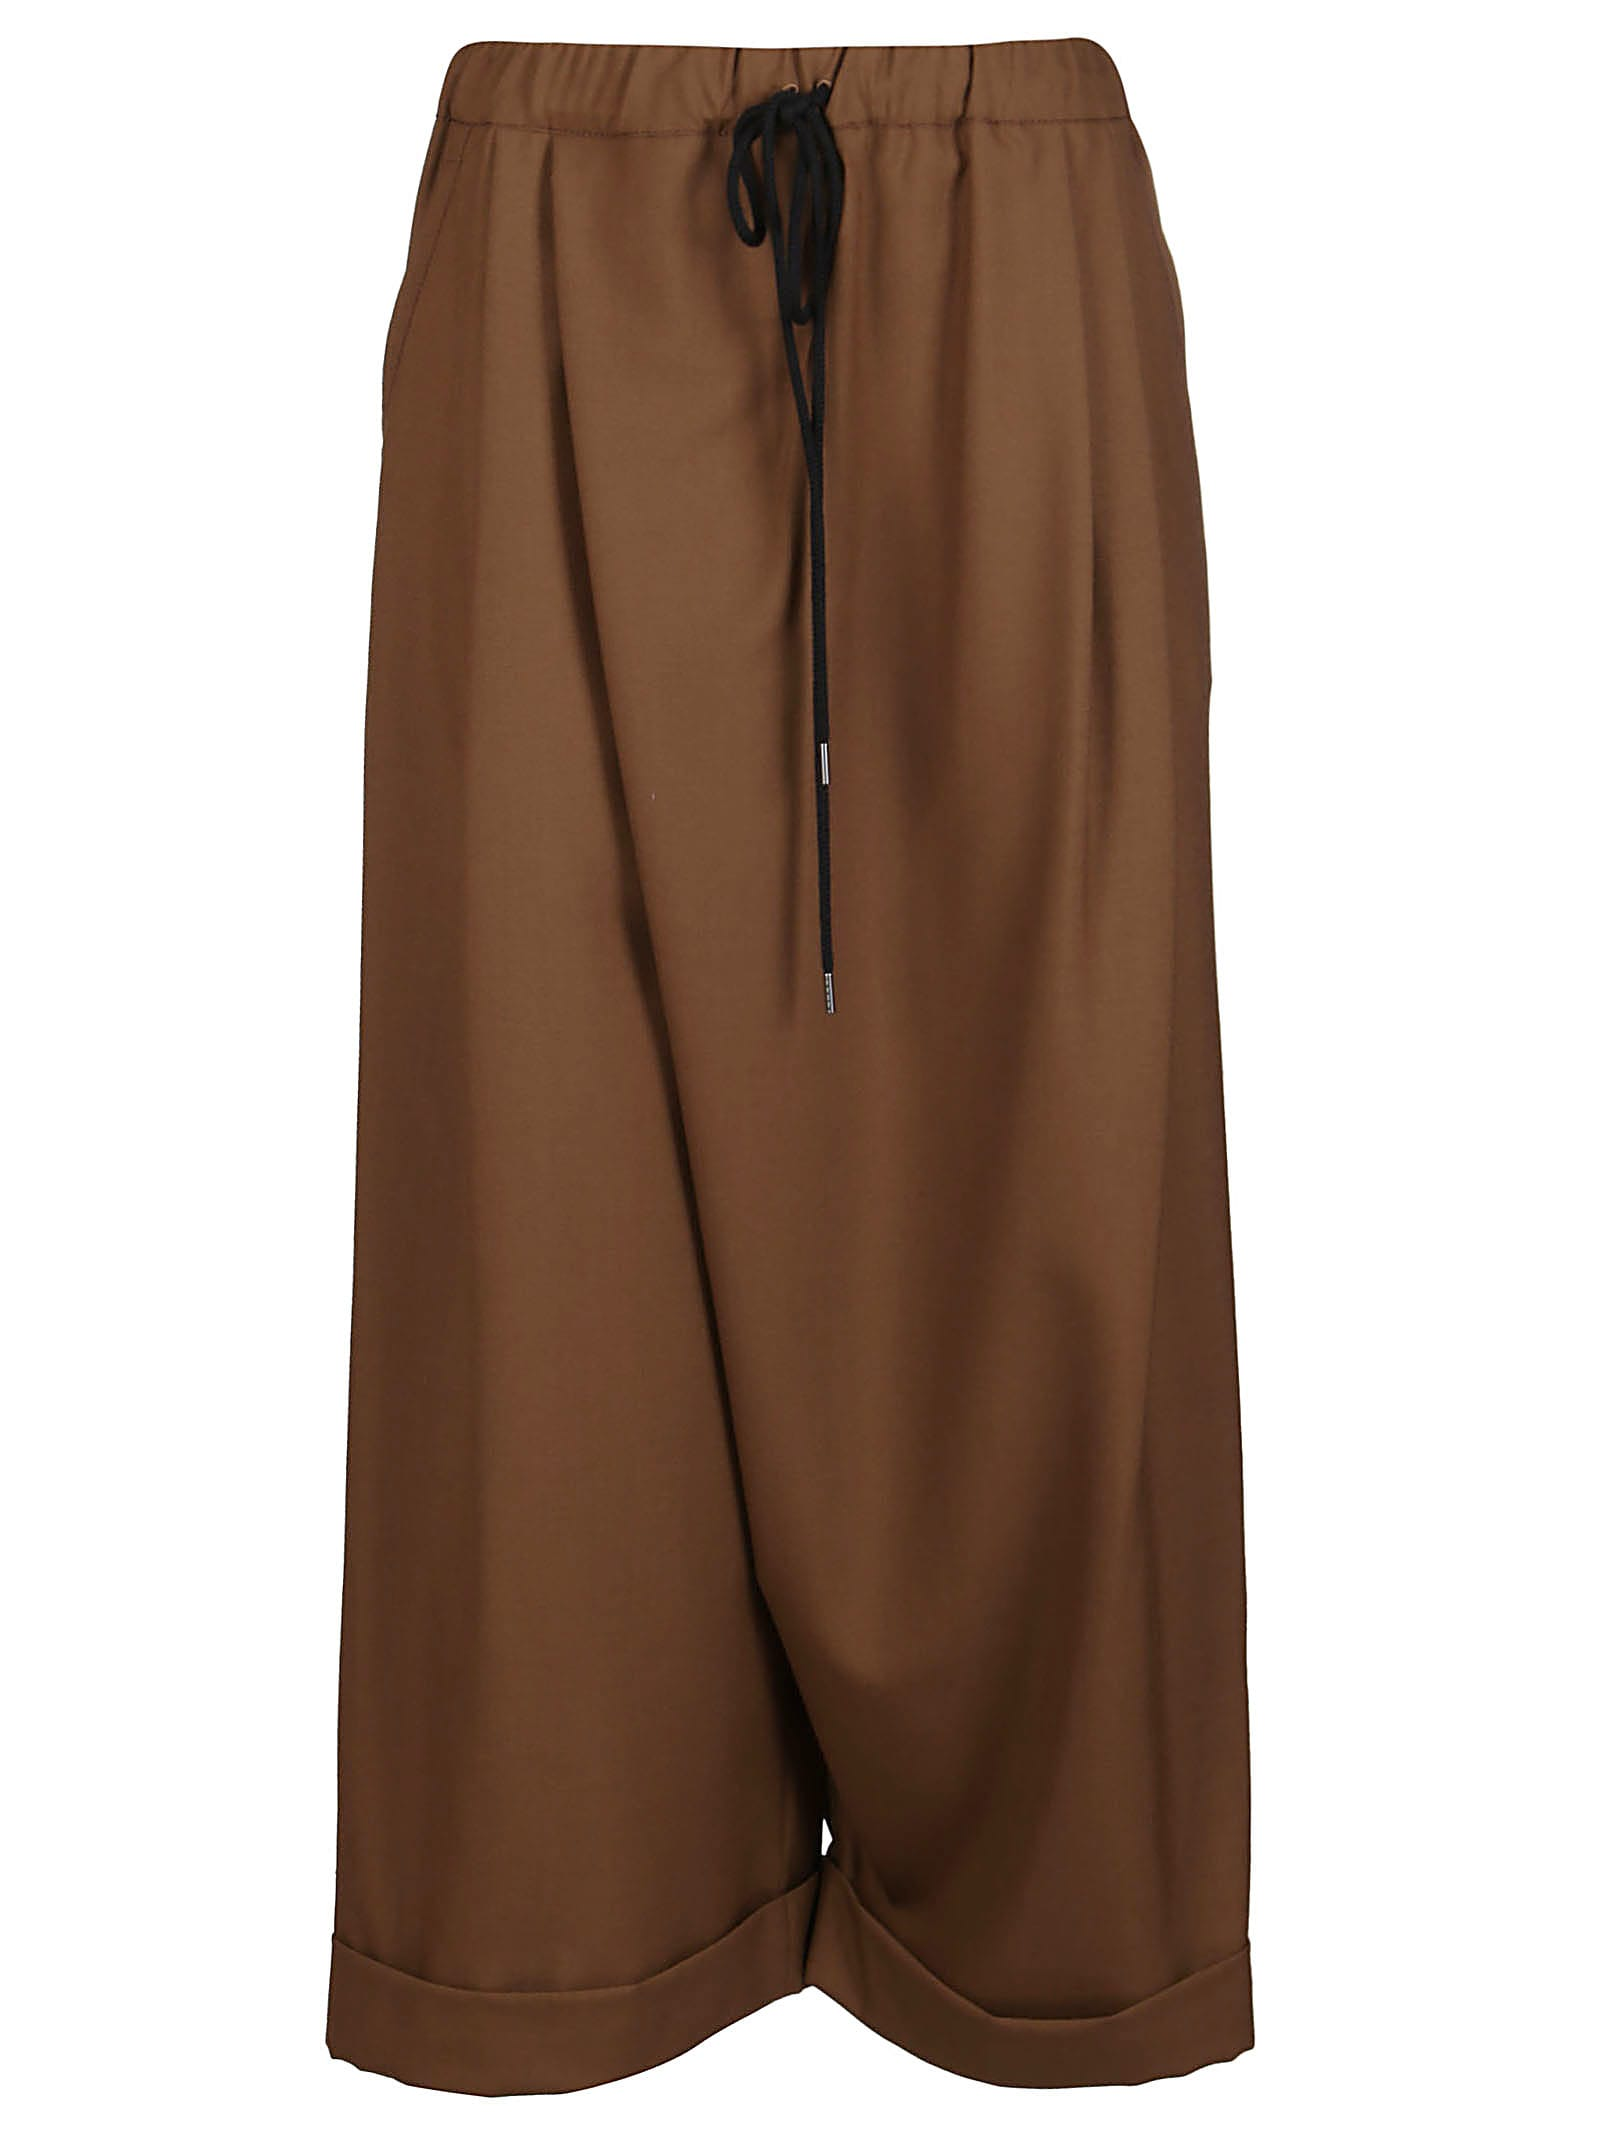 Marni BROWN VIRGIN WOOL TROUSERS